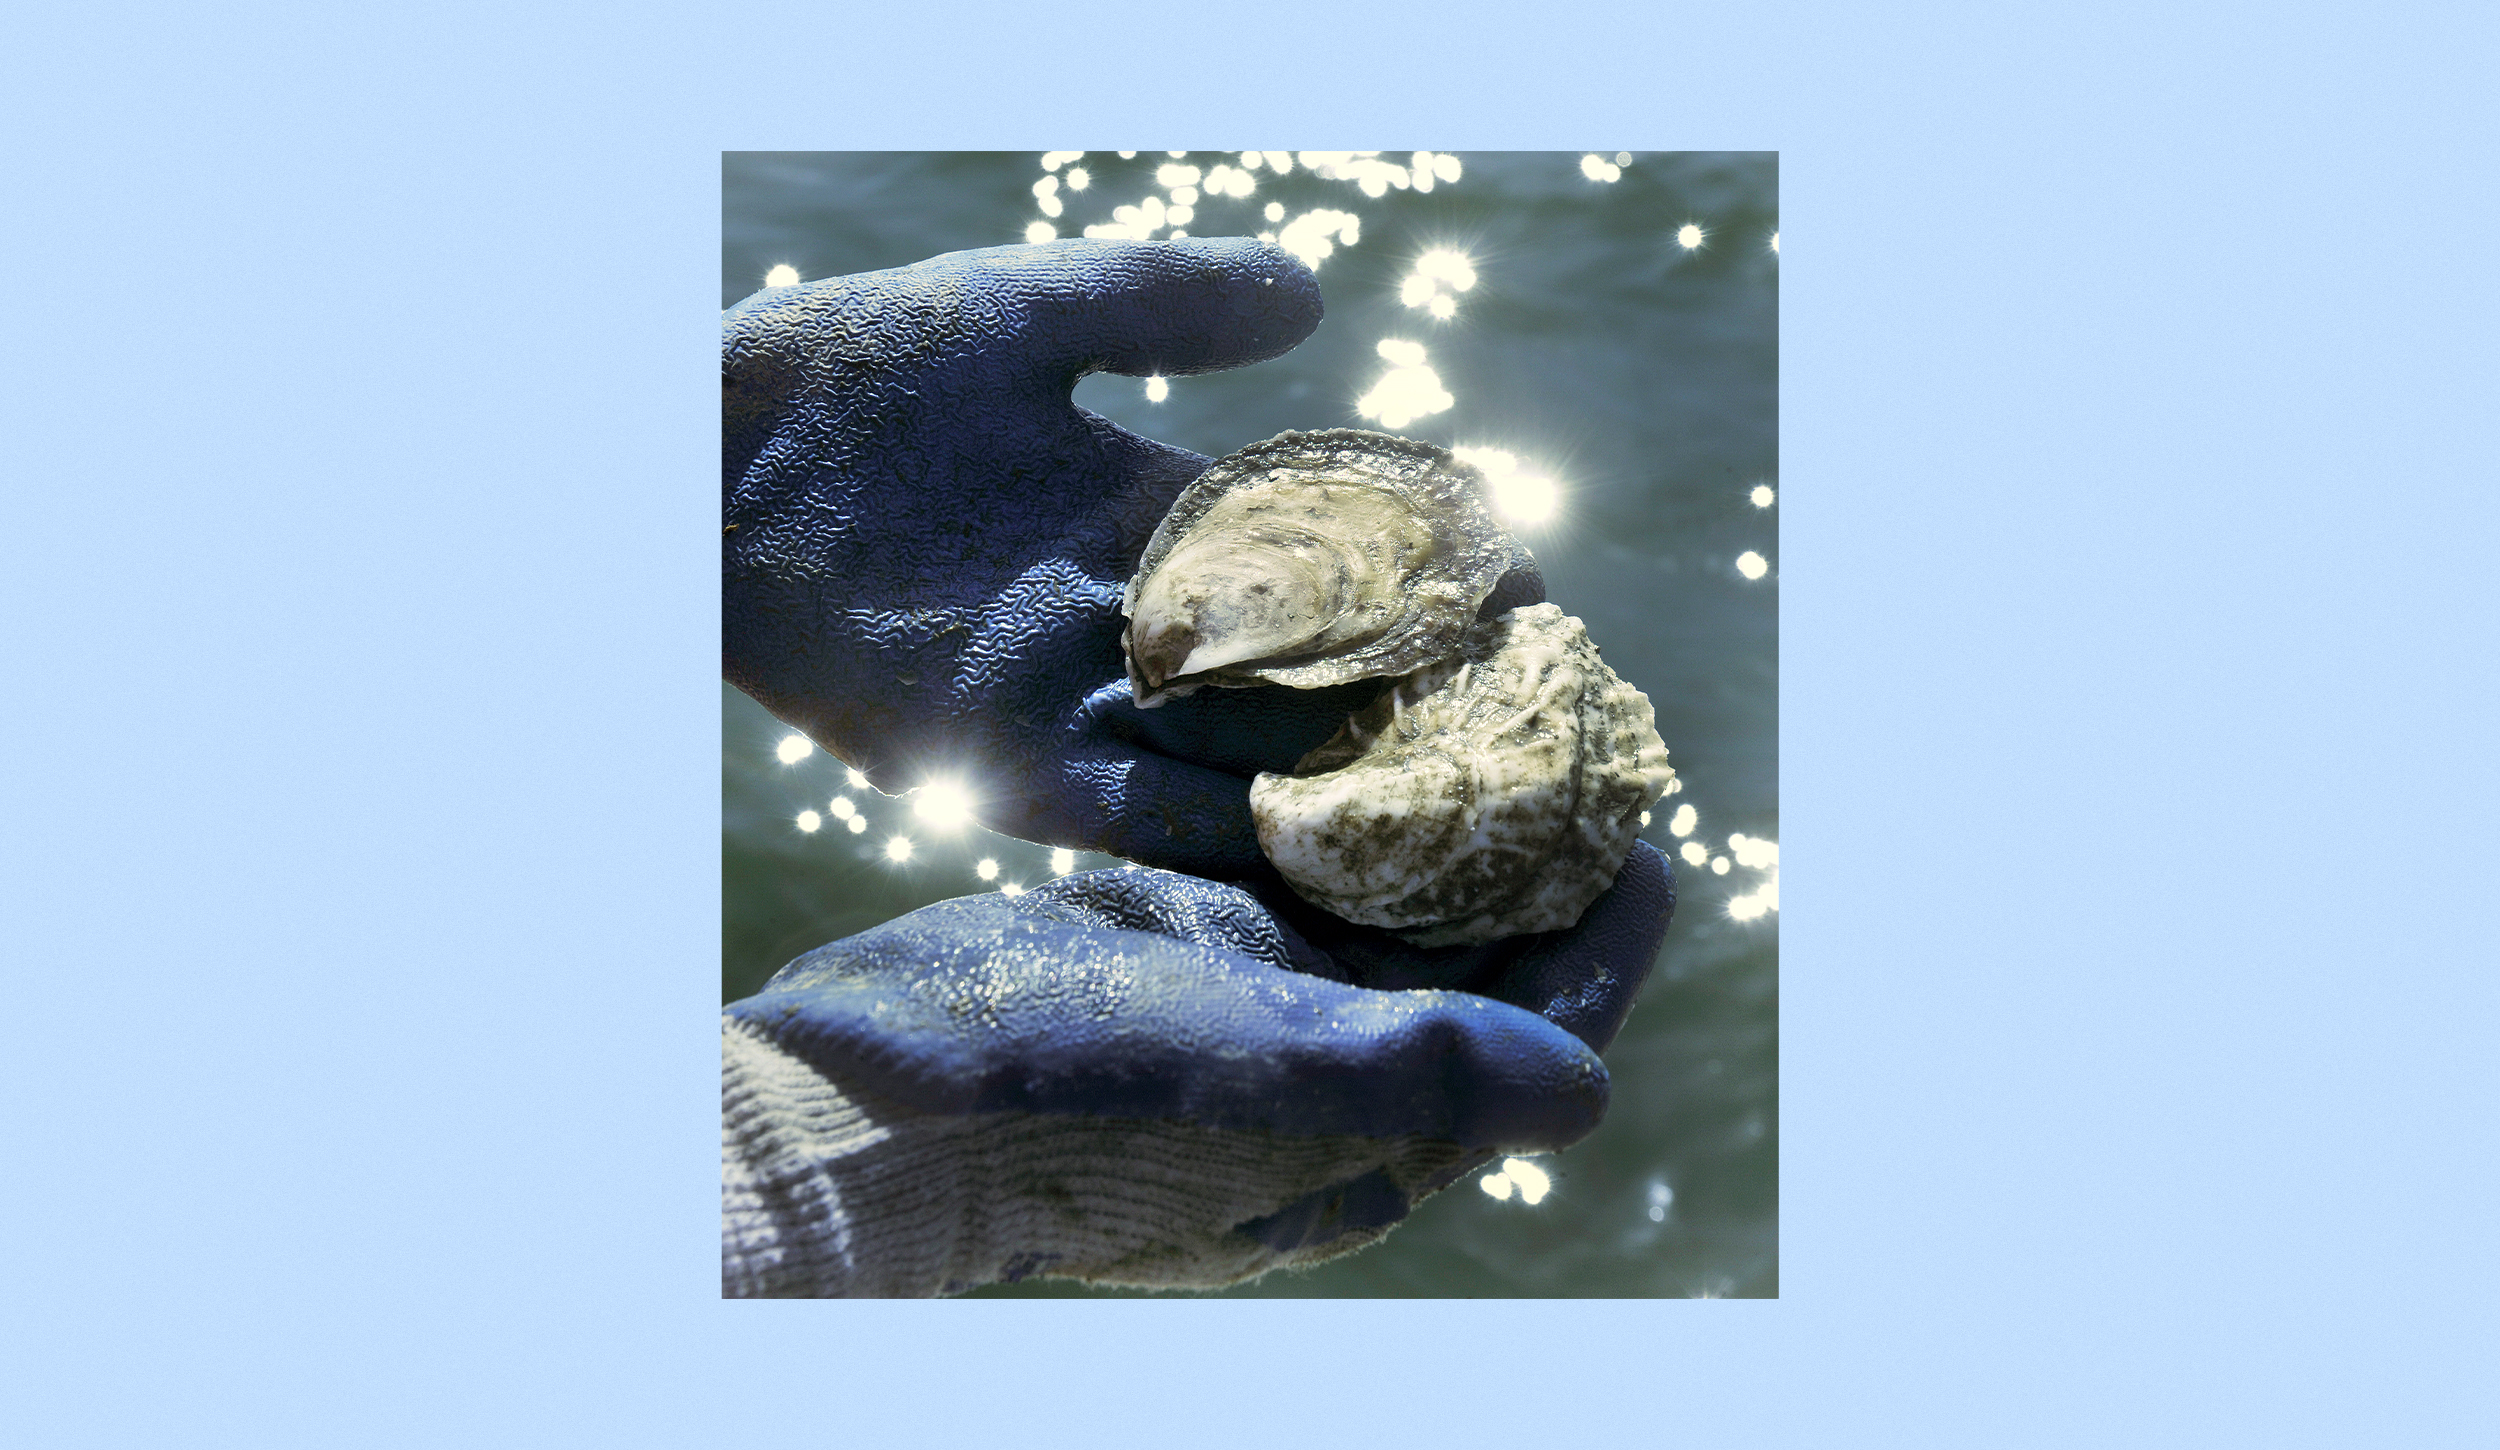 Want-to-help-save-the-oyster-industry?-Eat-bigger-ones,-some-farmers-and-chefs-say.